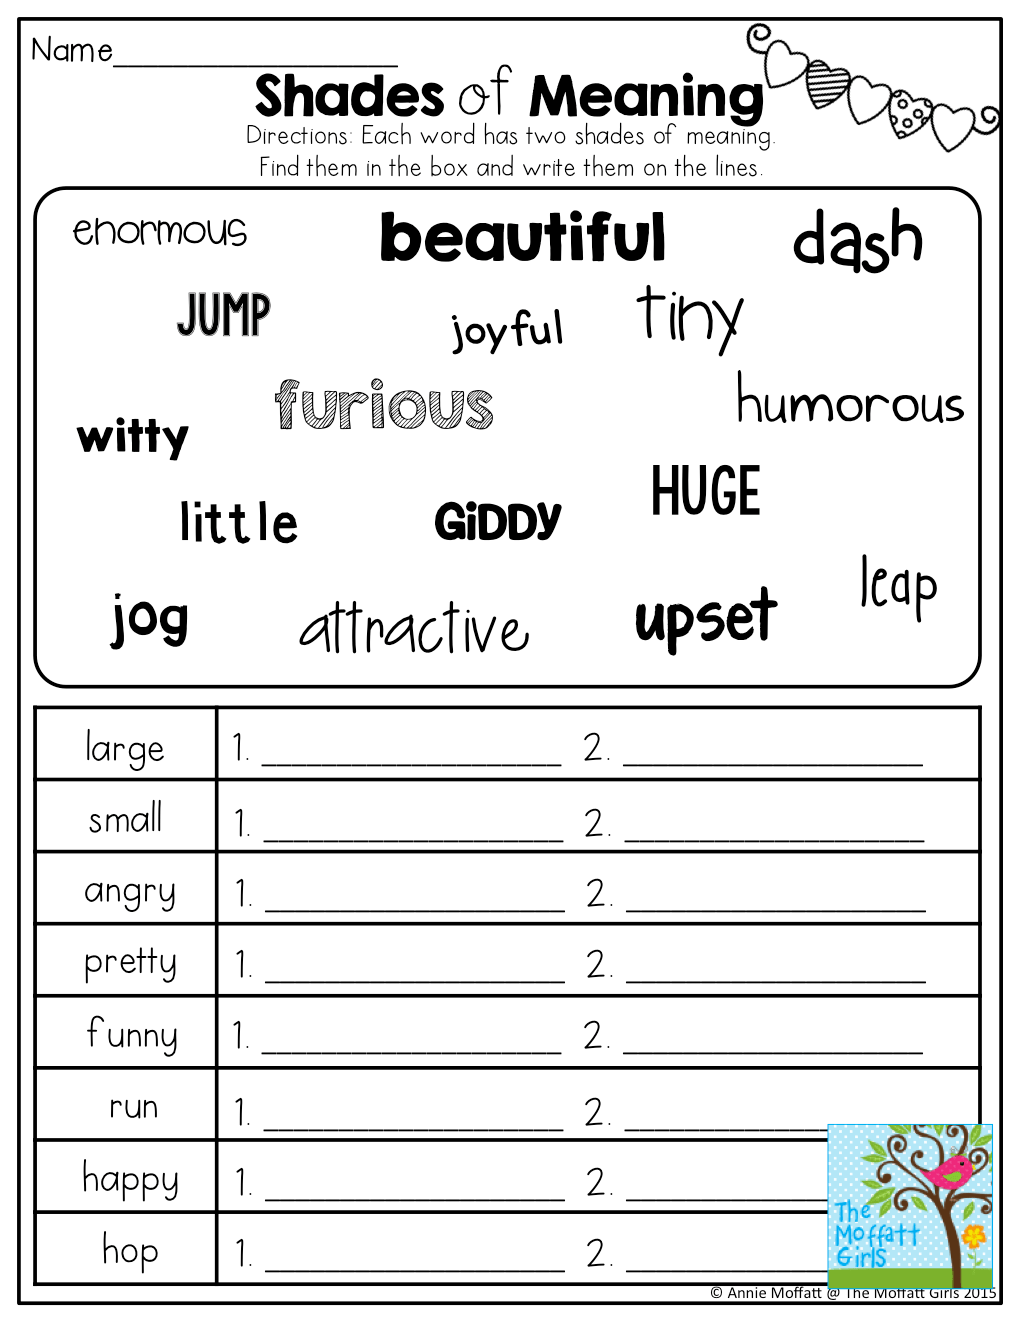 Shades Of Meaning Tons Of Other Great Printables